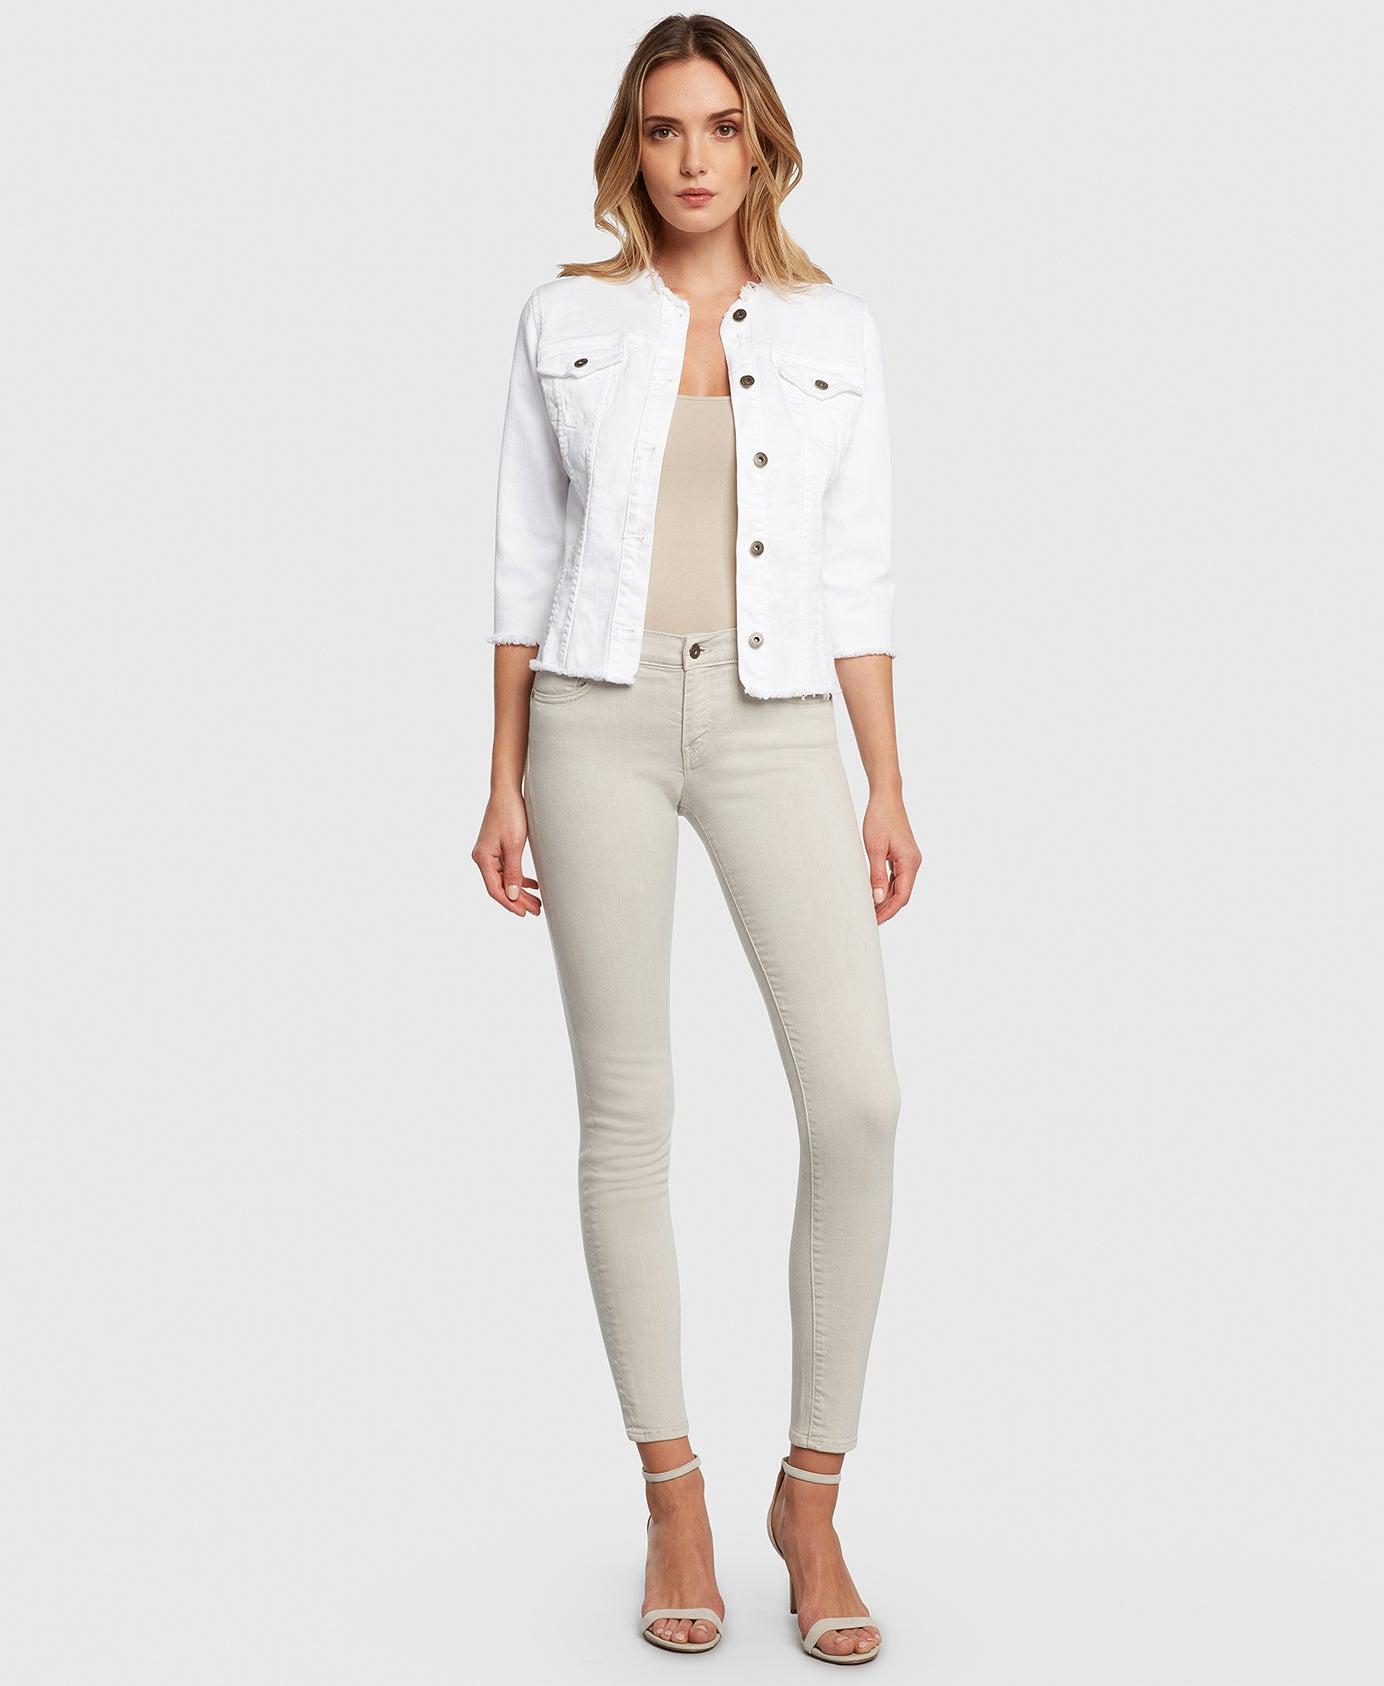 Principle denim jacket JEWEL in White front